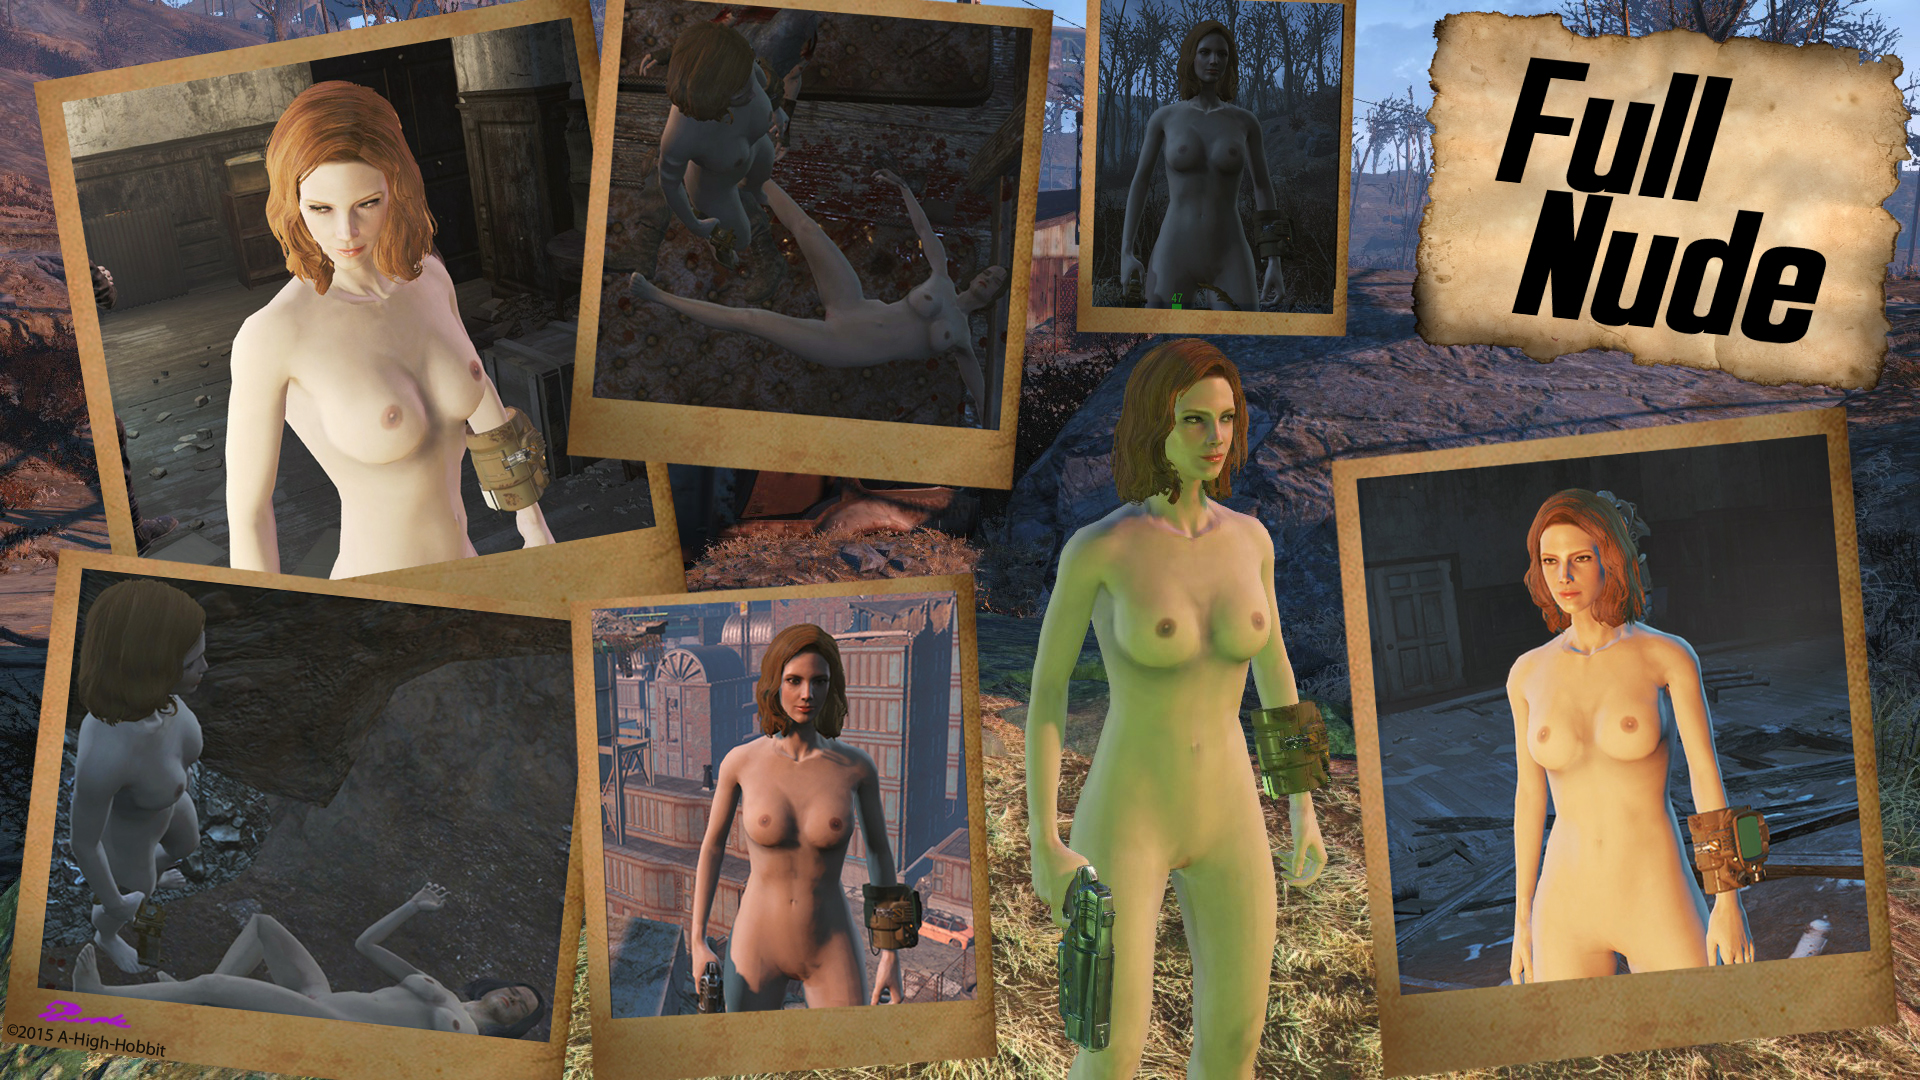 Fallout nude pic strip exposed scene